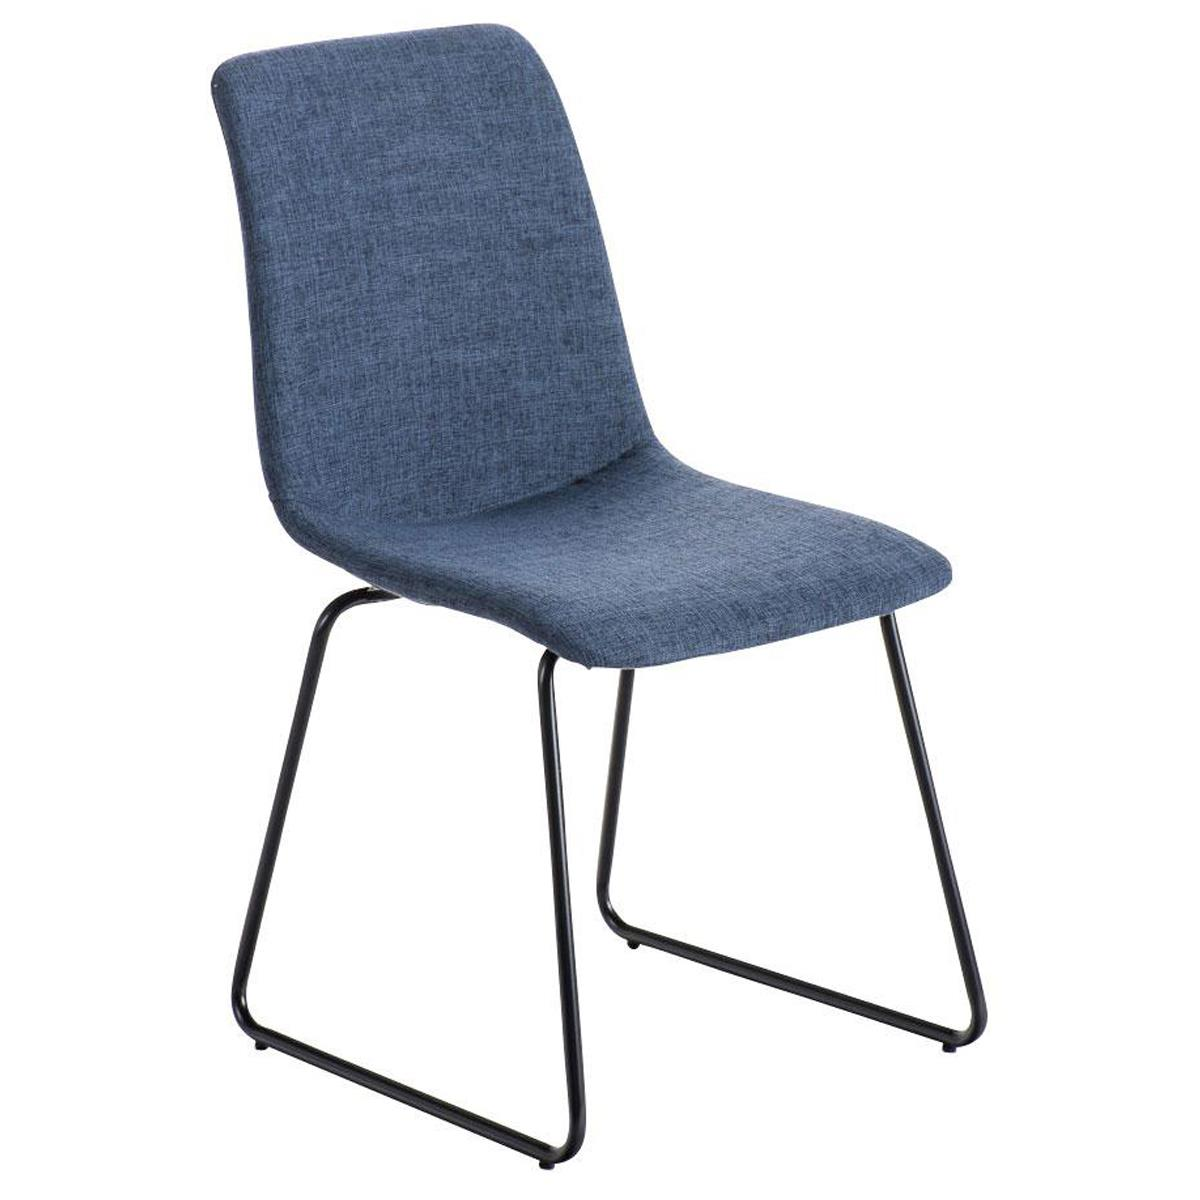 Silla de Confidente FRANCESC, Diseño Exclusivo, Tapizada en Tela color Azul